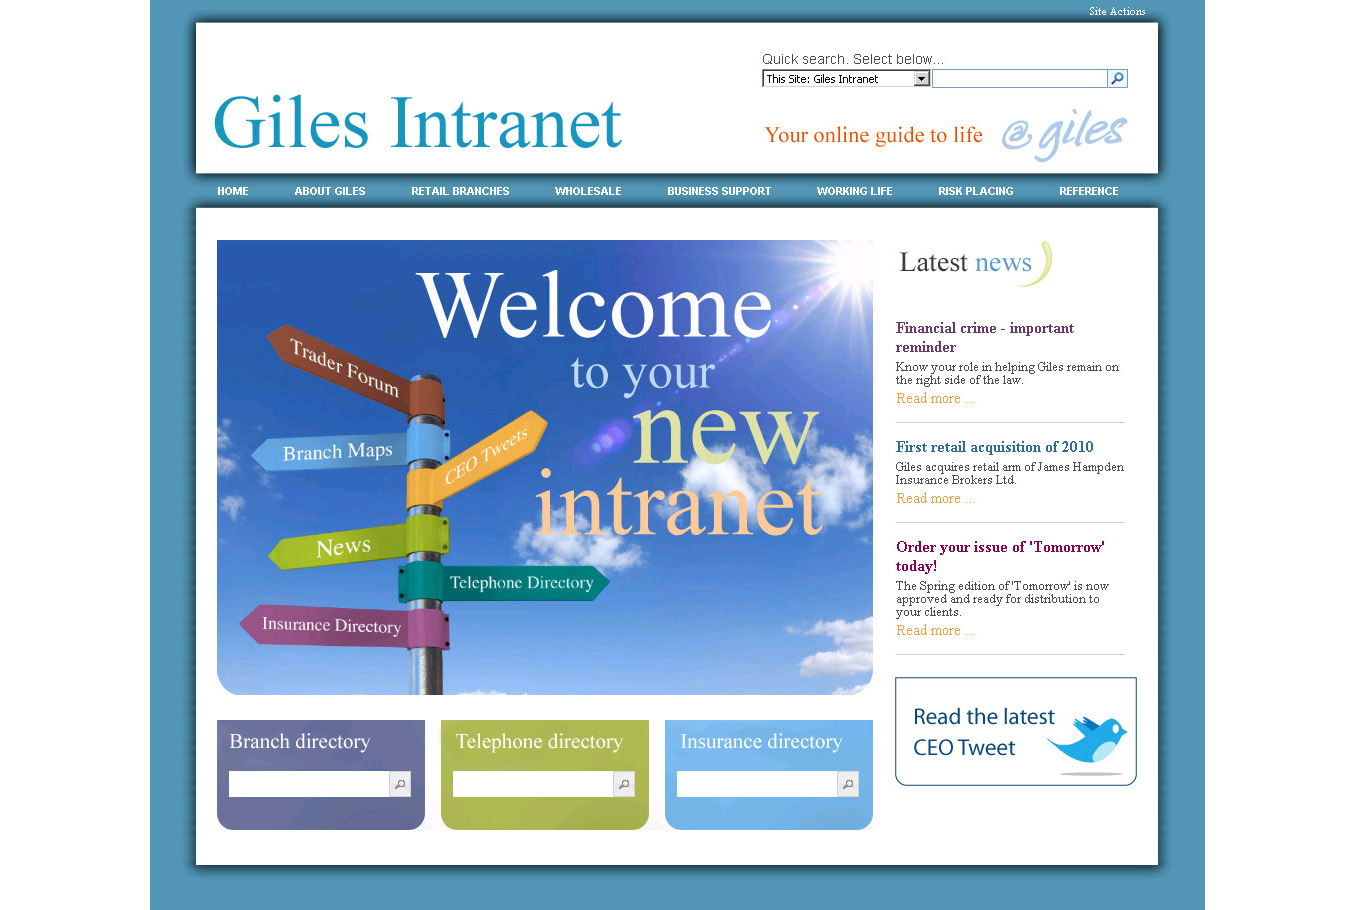 intranet giles1 - Intranet Design Ideas